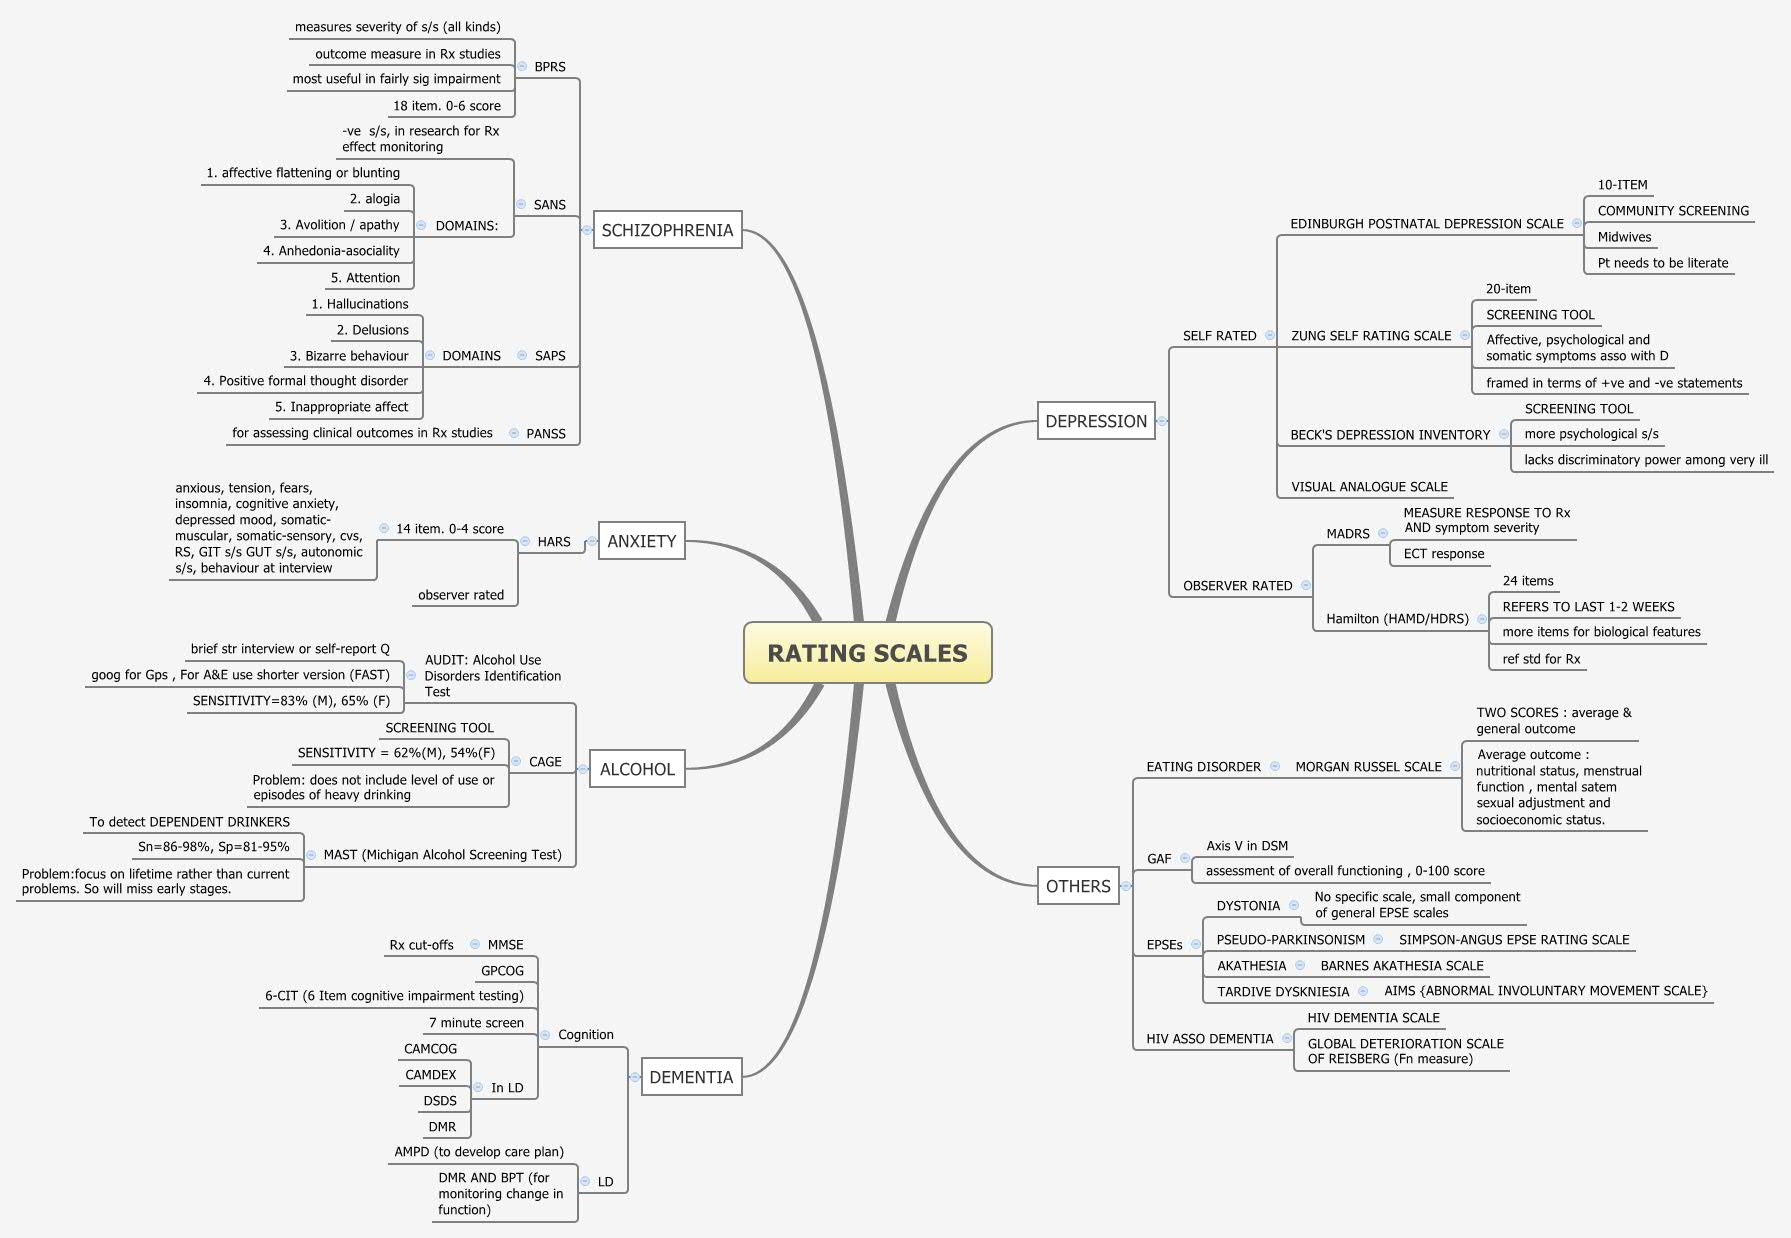 Systematic Review Amp Metaysis Xmind Online Library